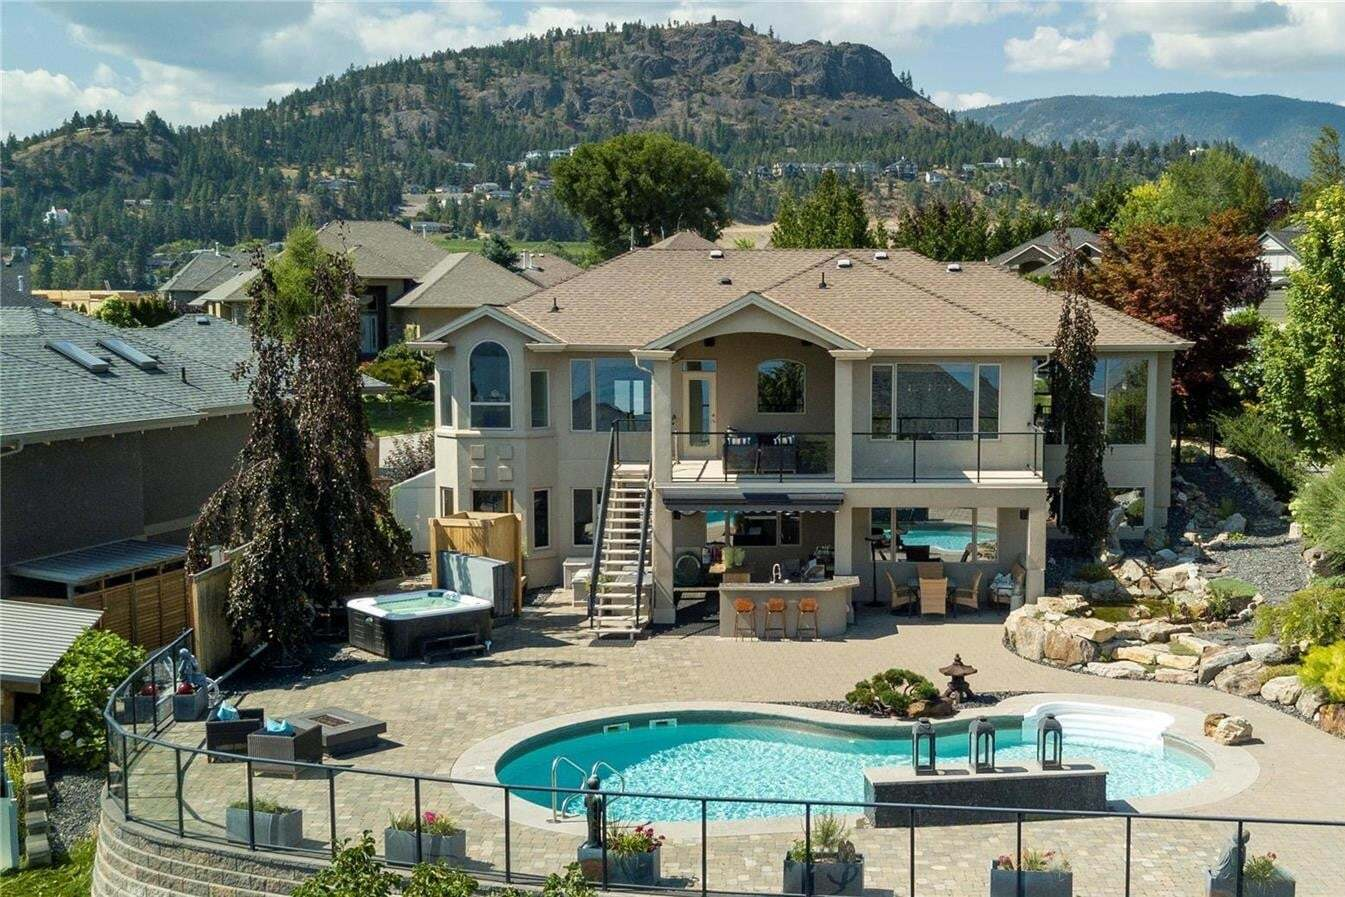 House for sale at 3103 Thacker Dr Unit 14 West Kelowna British Columbia - MLS: 10215017